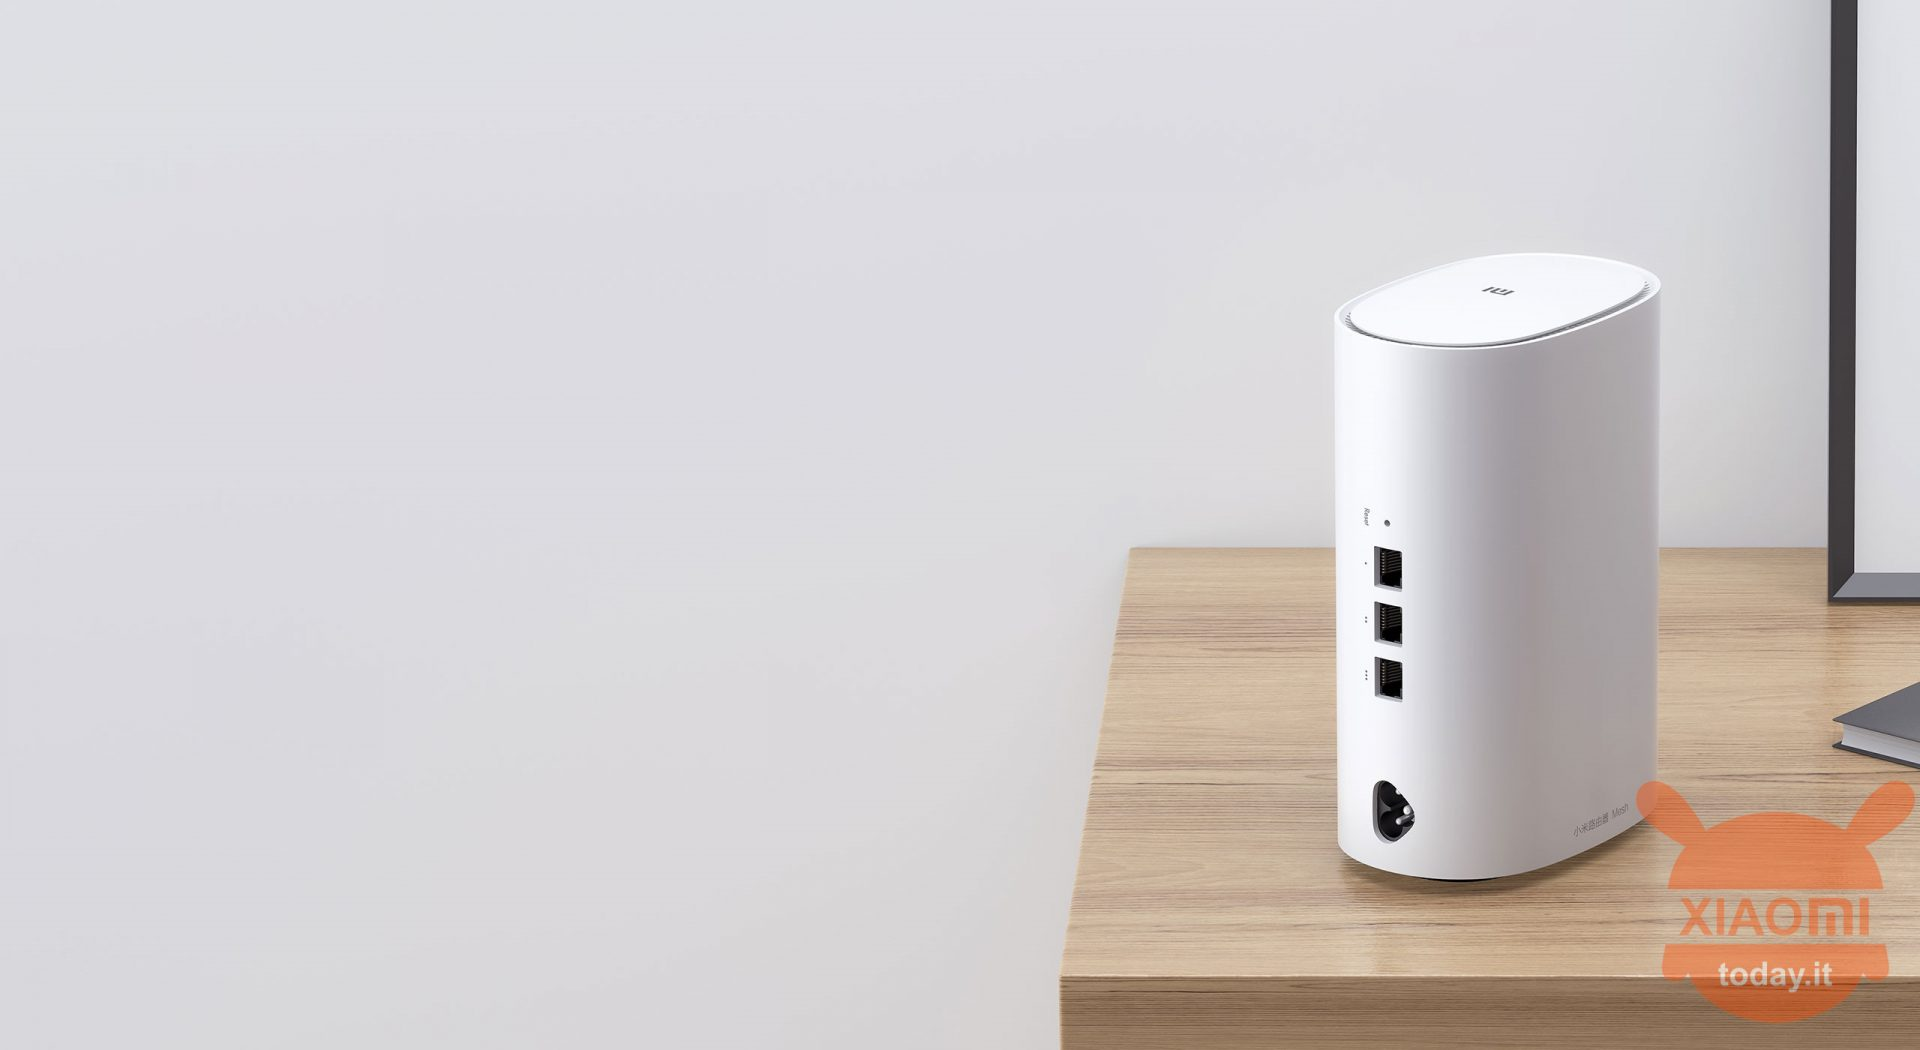 Xiaomi Mi WiFi Mesh router price